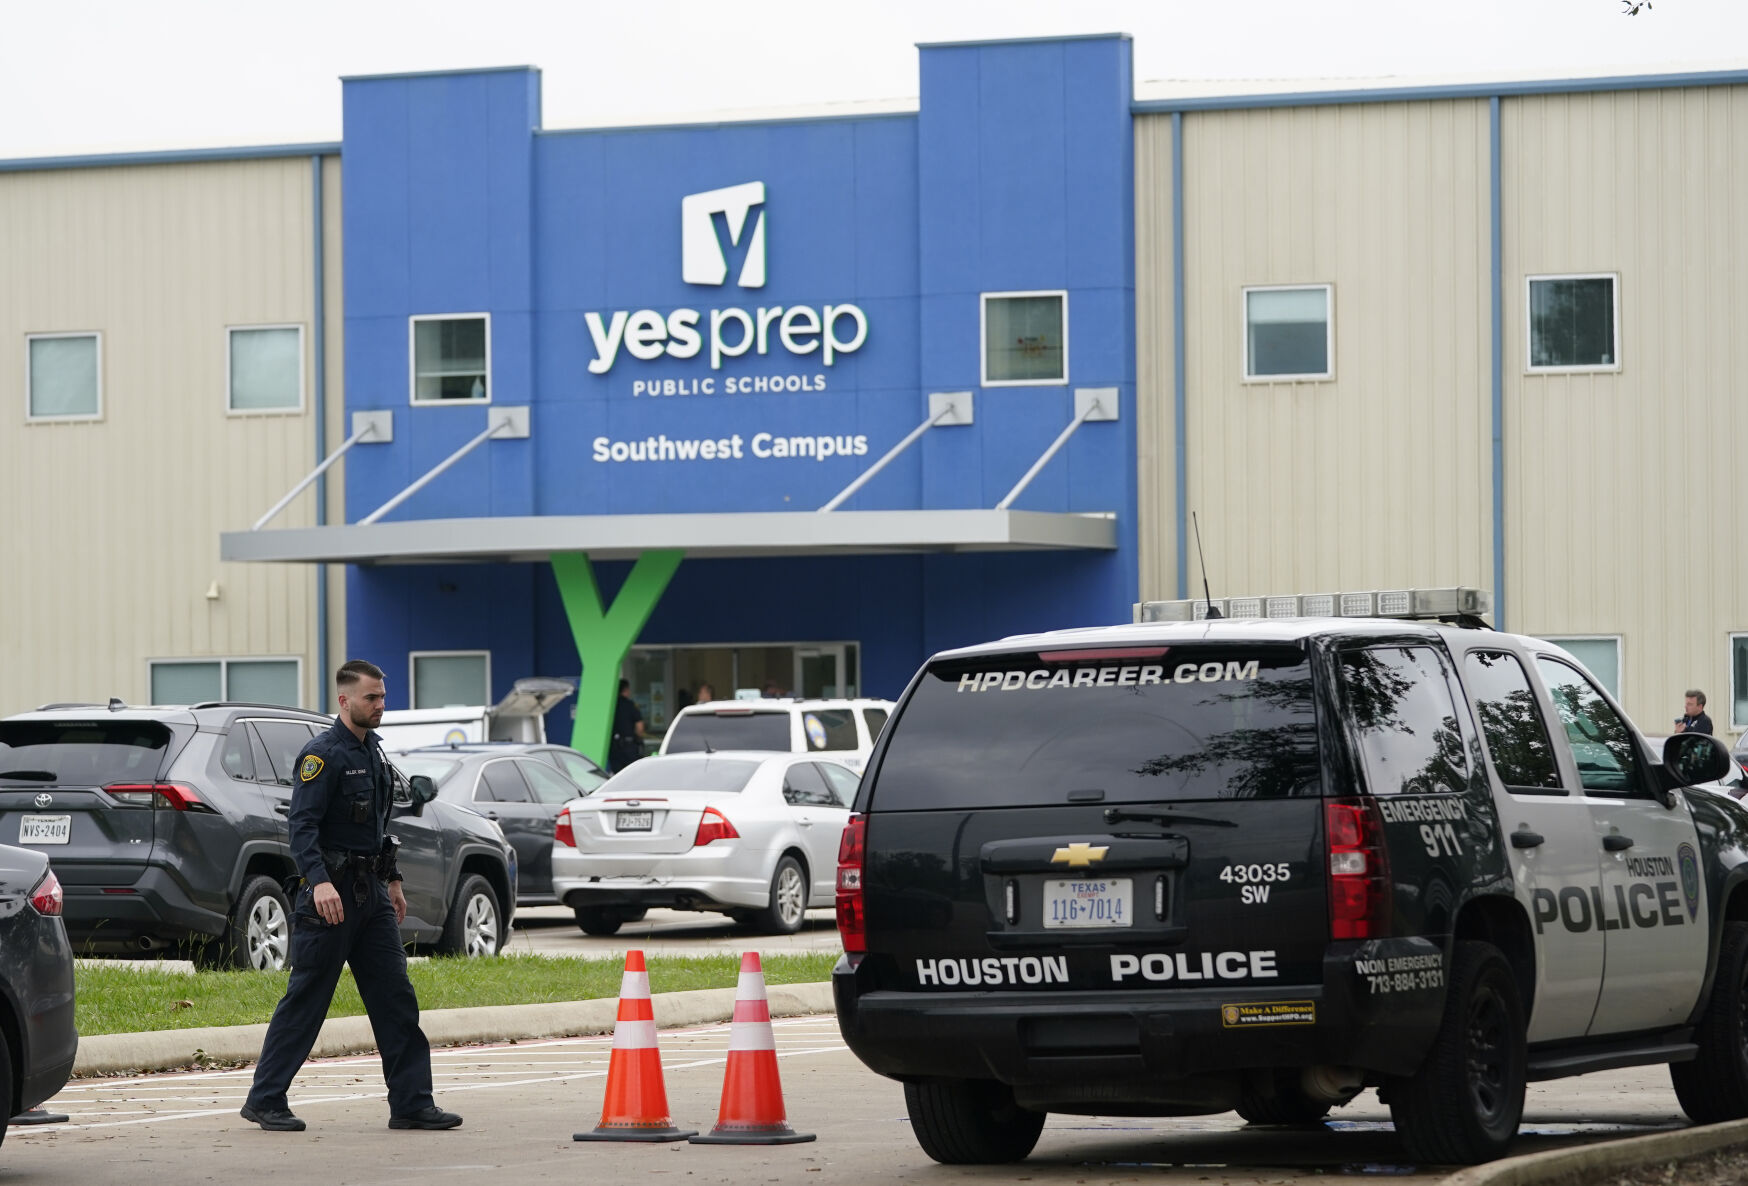 Classes resume at Texas school after shooting that wounded 2 6